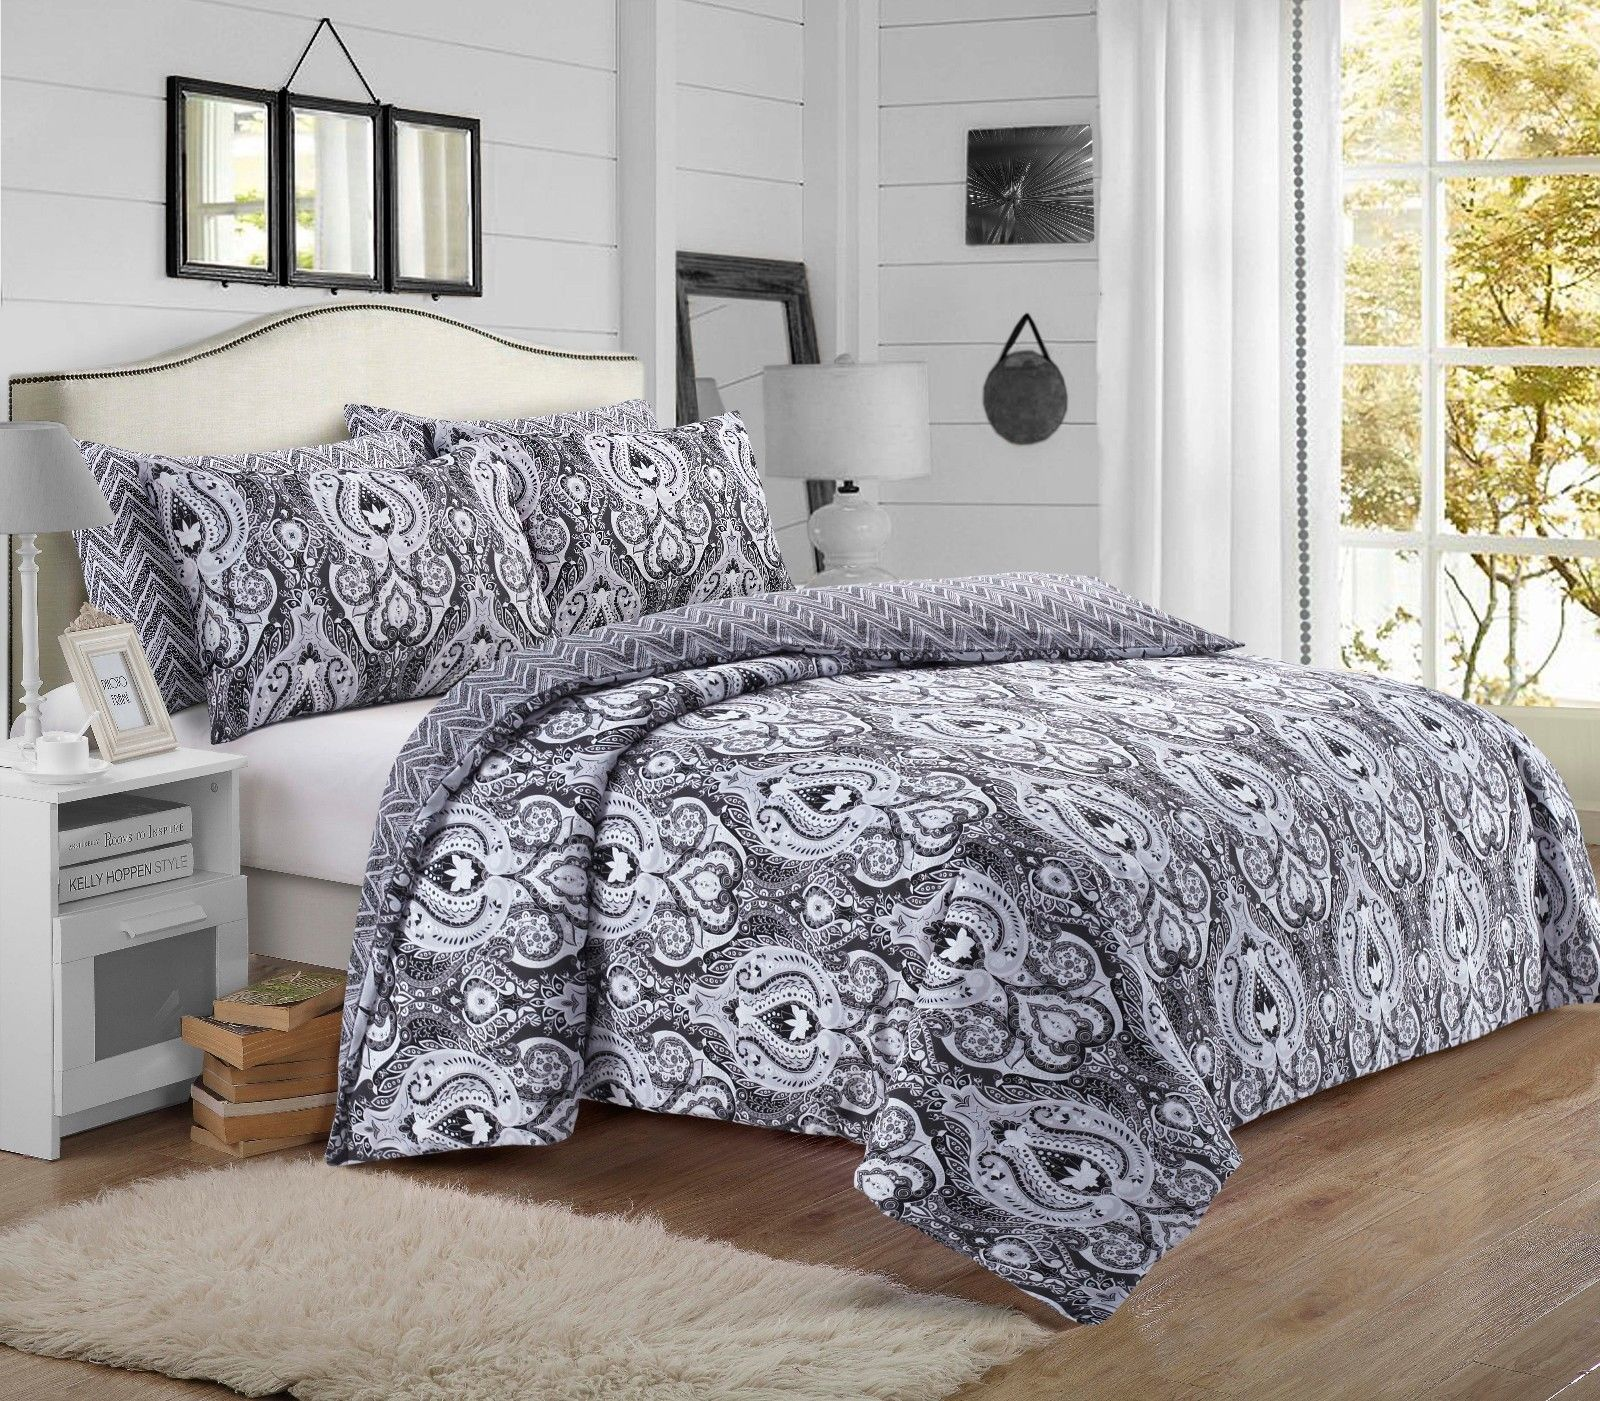 delmore paisley images covers shop null duvet us ethan bedding cover allen en